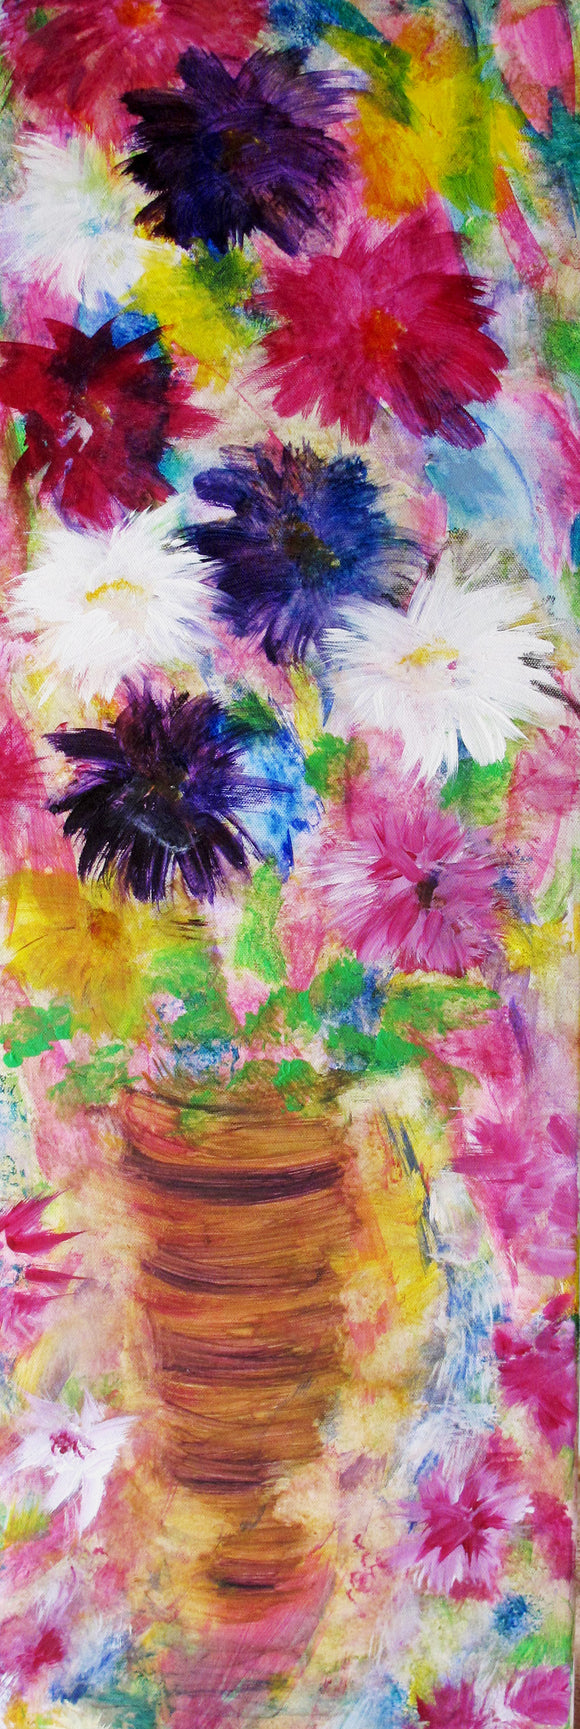 Original Acrylic Painting - Bright Flowers